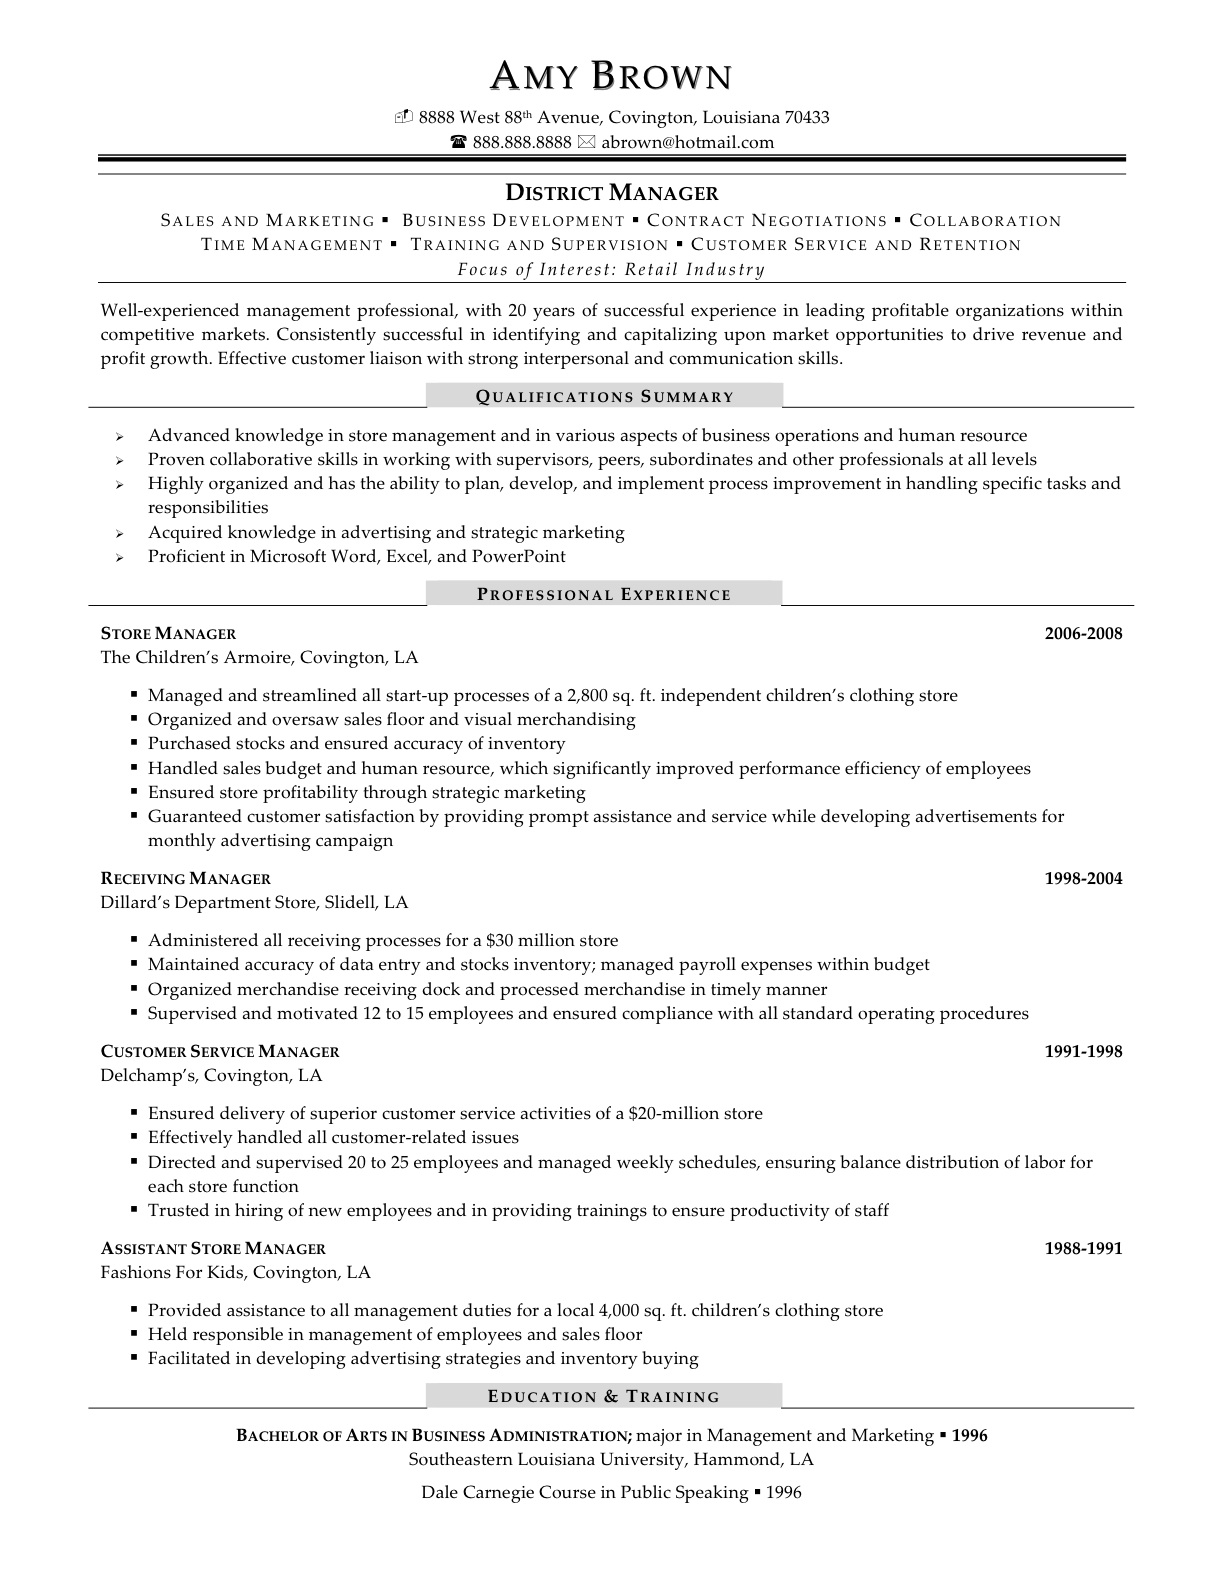 retail manager resume good examples - Retail Management Resume Examples